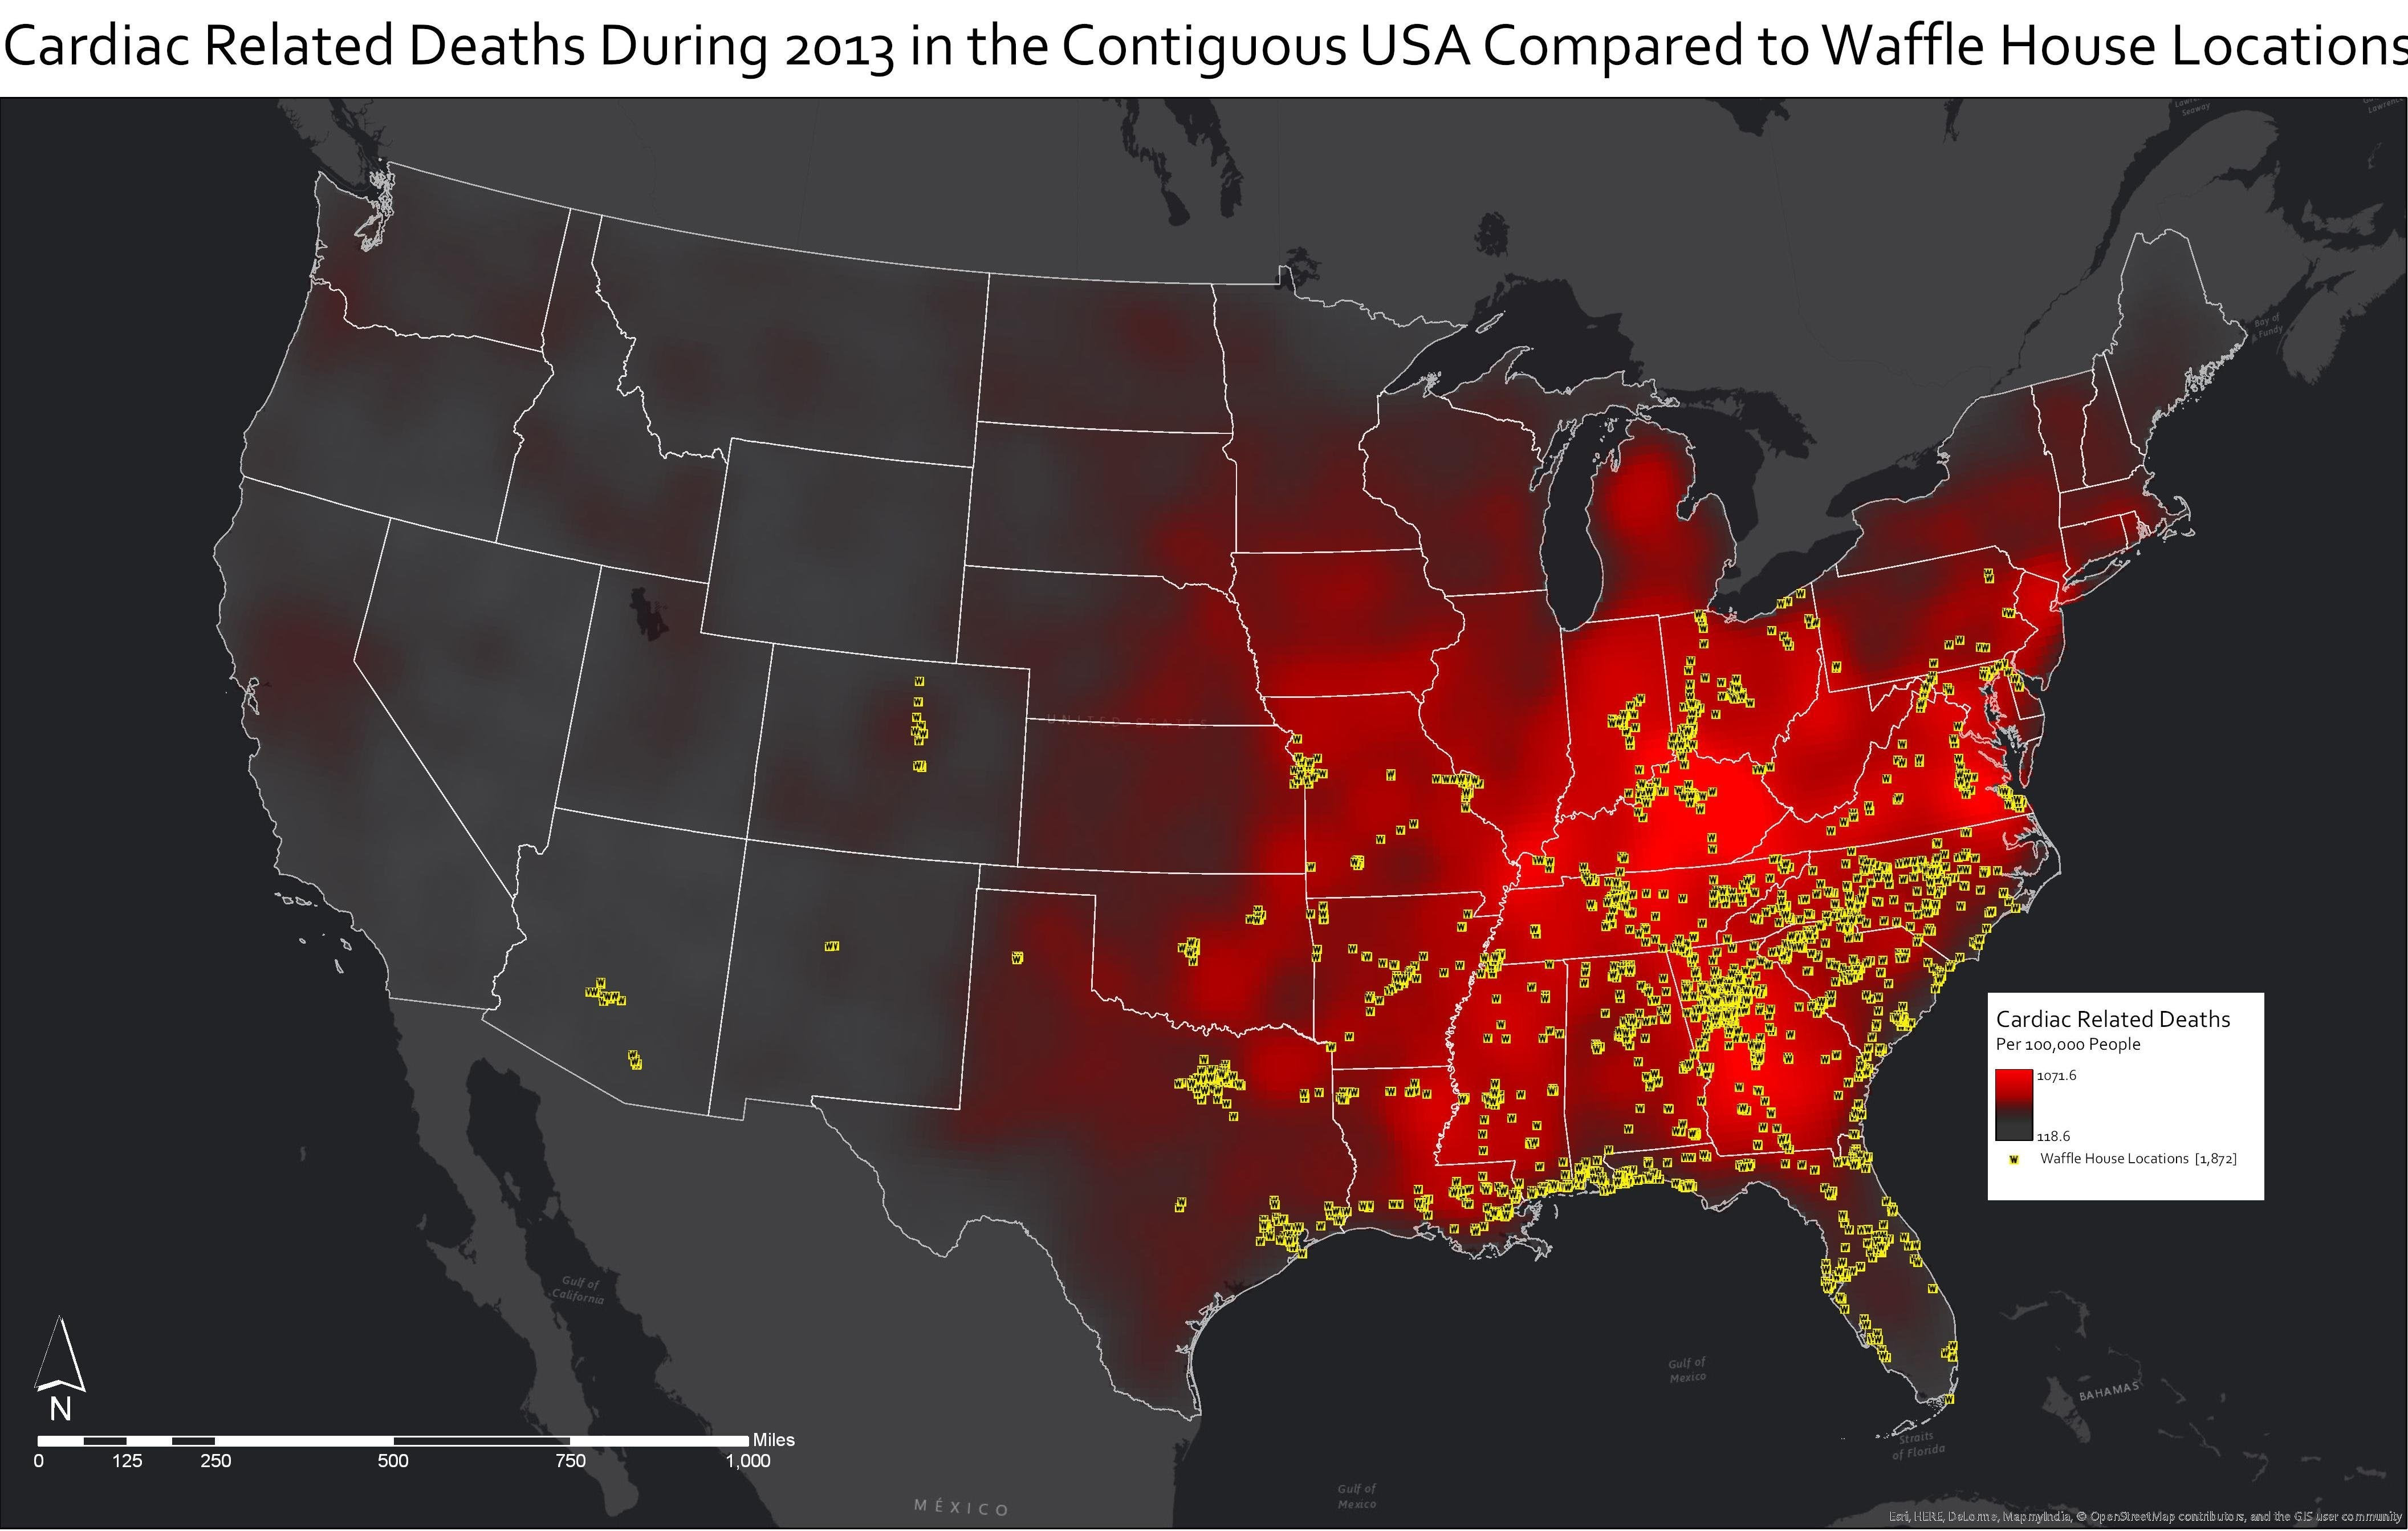 This Map Shows Cardiac Relateds Near Waffle House